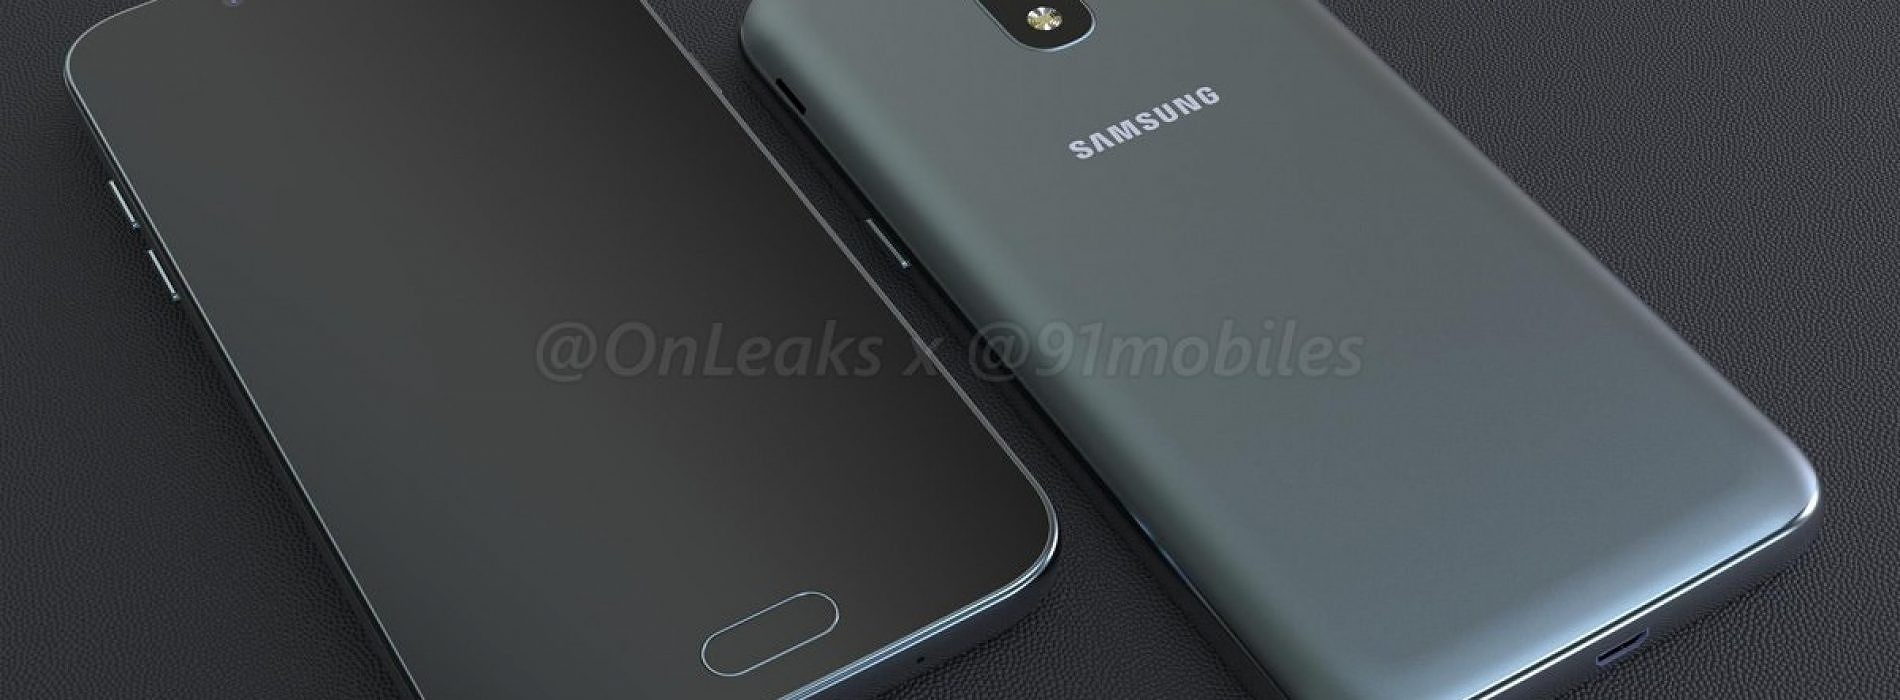 Samsung Galaxy J2 Pro 2018 Images And 360 Degree Video Leaks